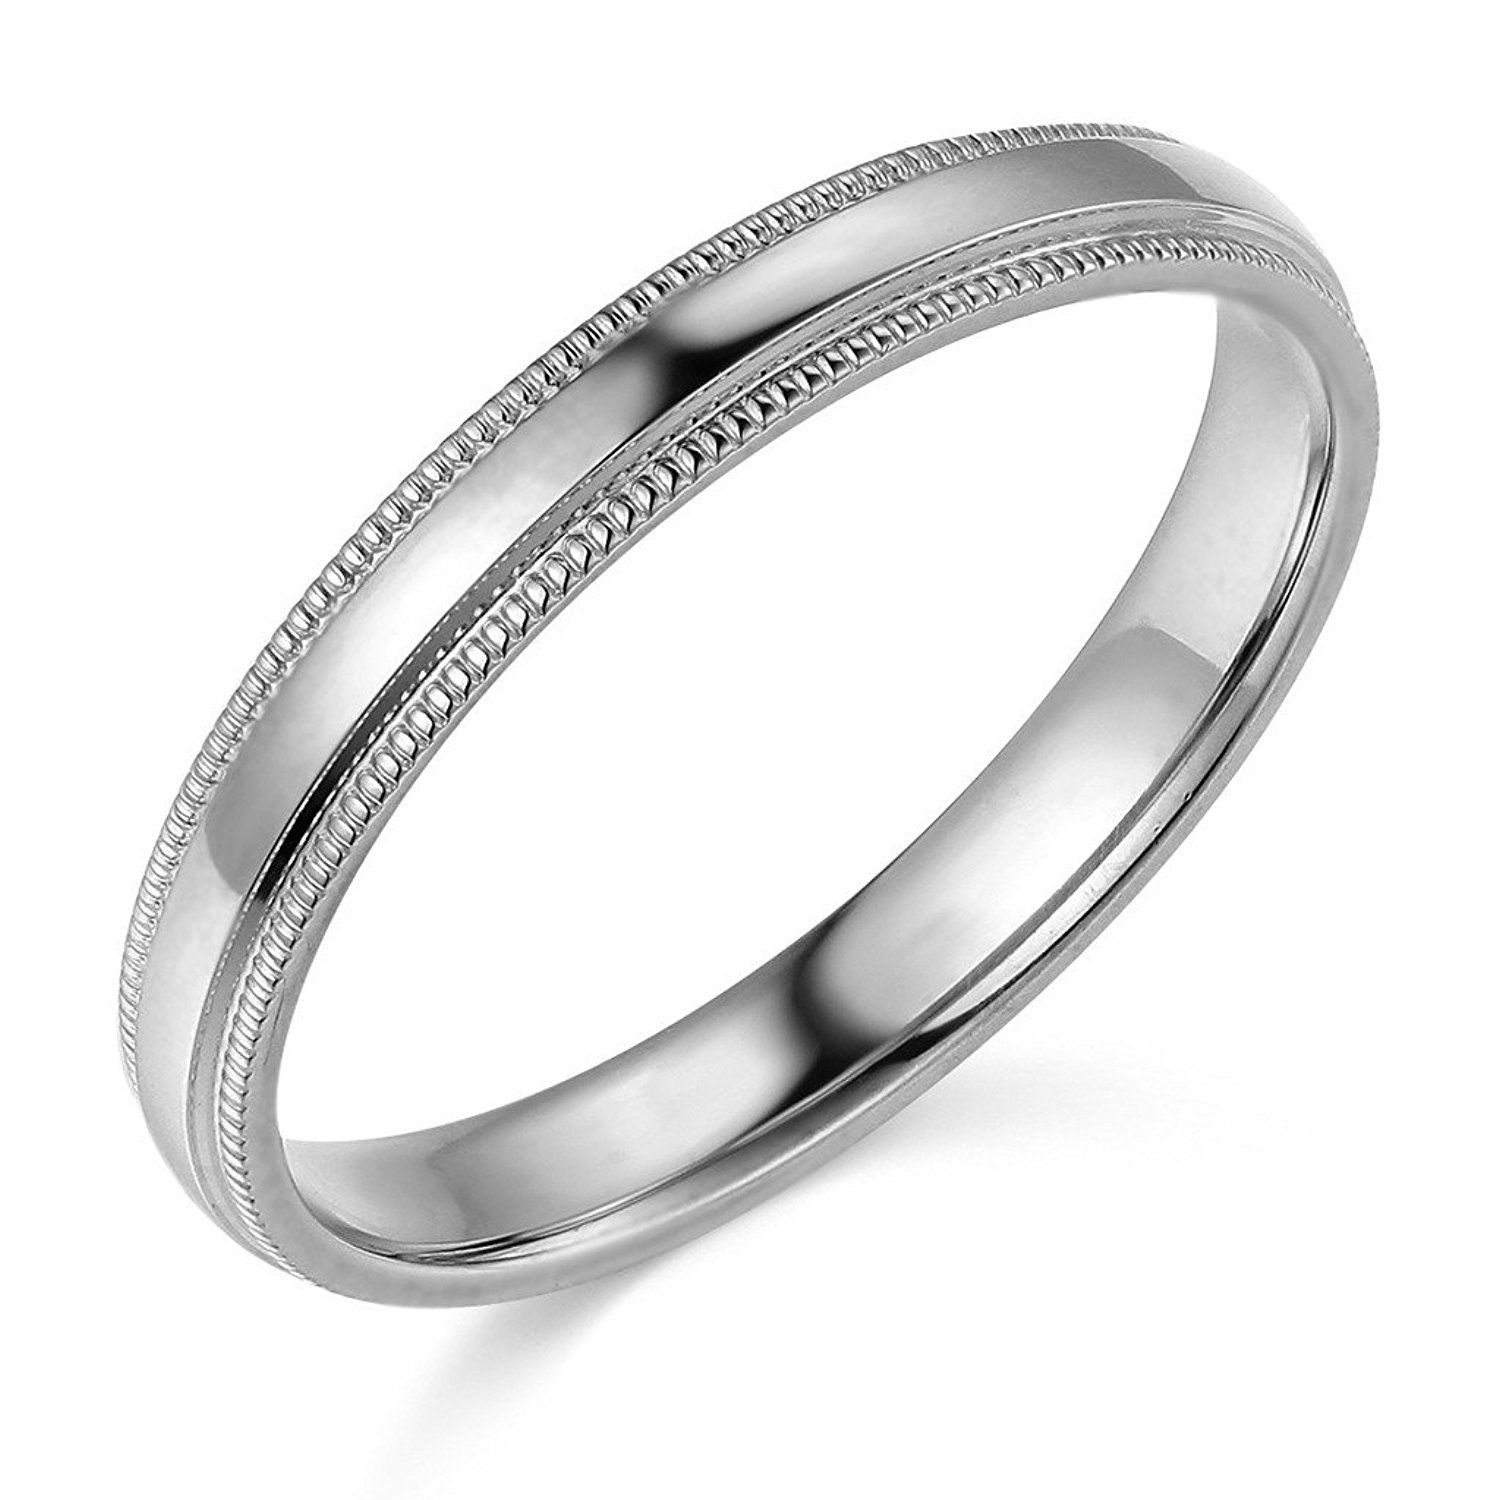 14k Yellow Or White Gold 3mm Plain Milgrain Wedding Band Check This Awesome Image Weddin With Images Milgrain Wedding Bands Jewelry Wedding Rings Mens Wedding Rings